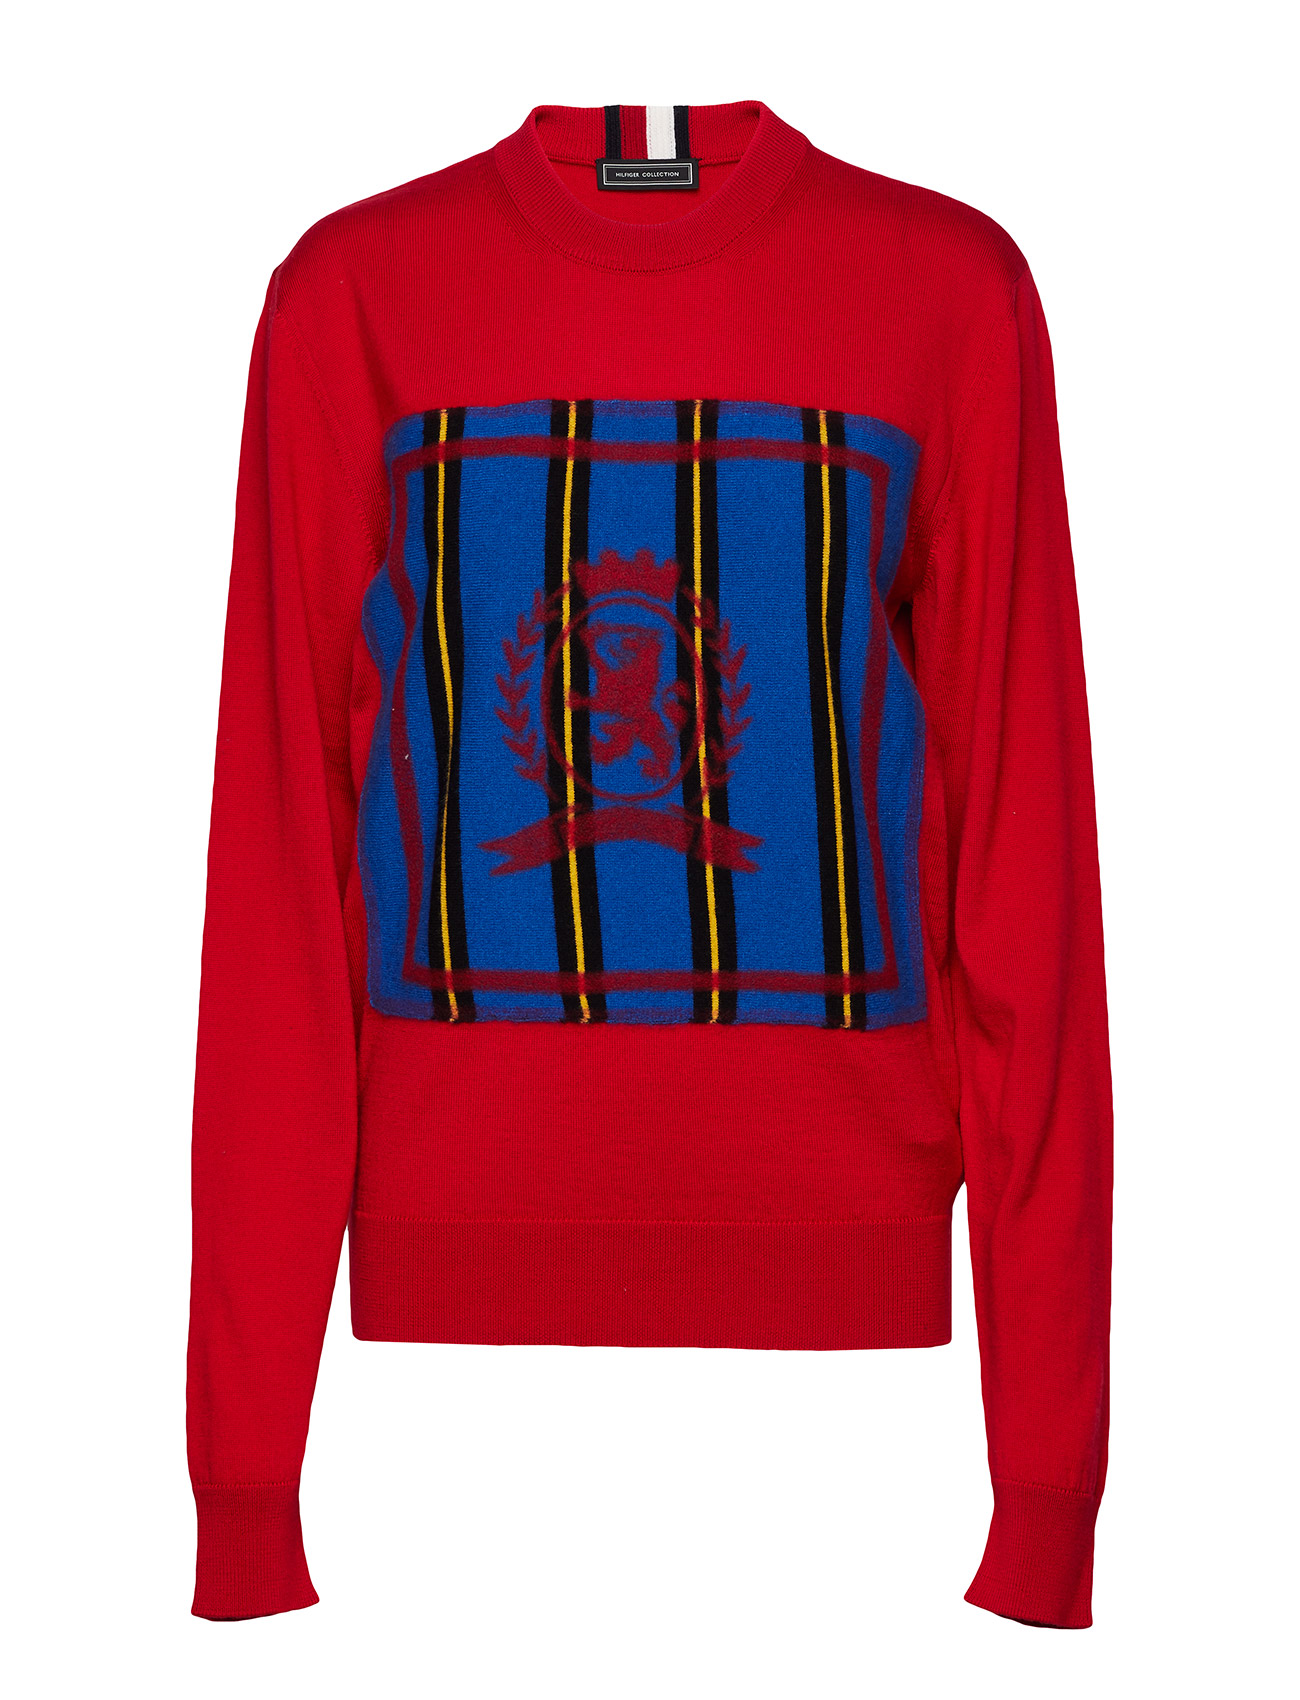 Hc Crest Needle Punch Sweater